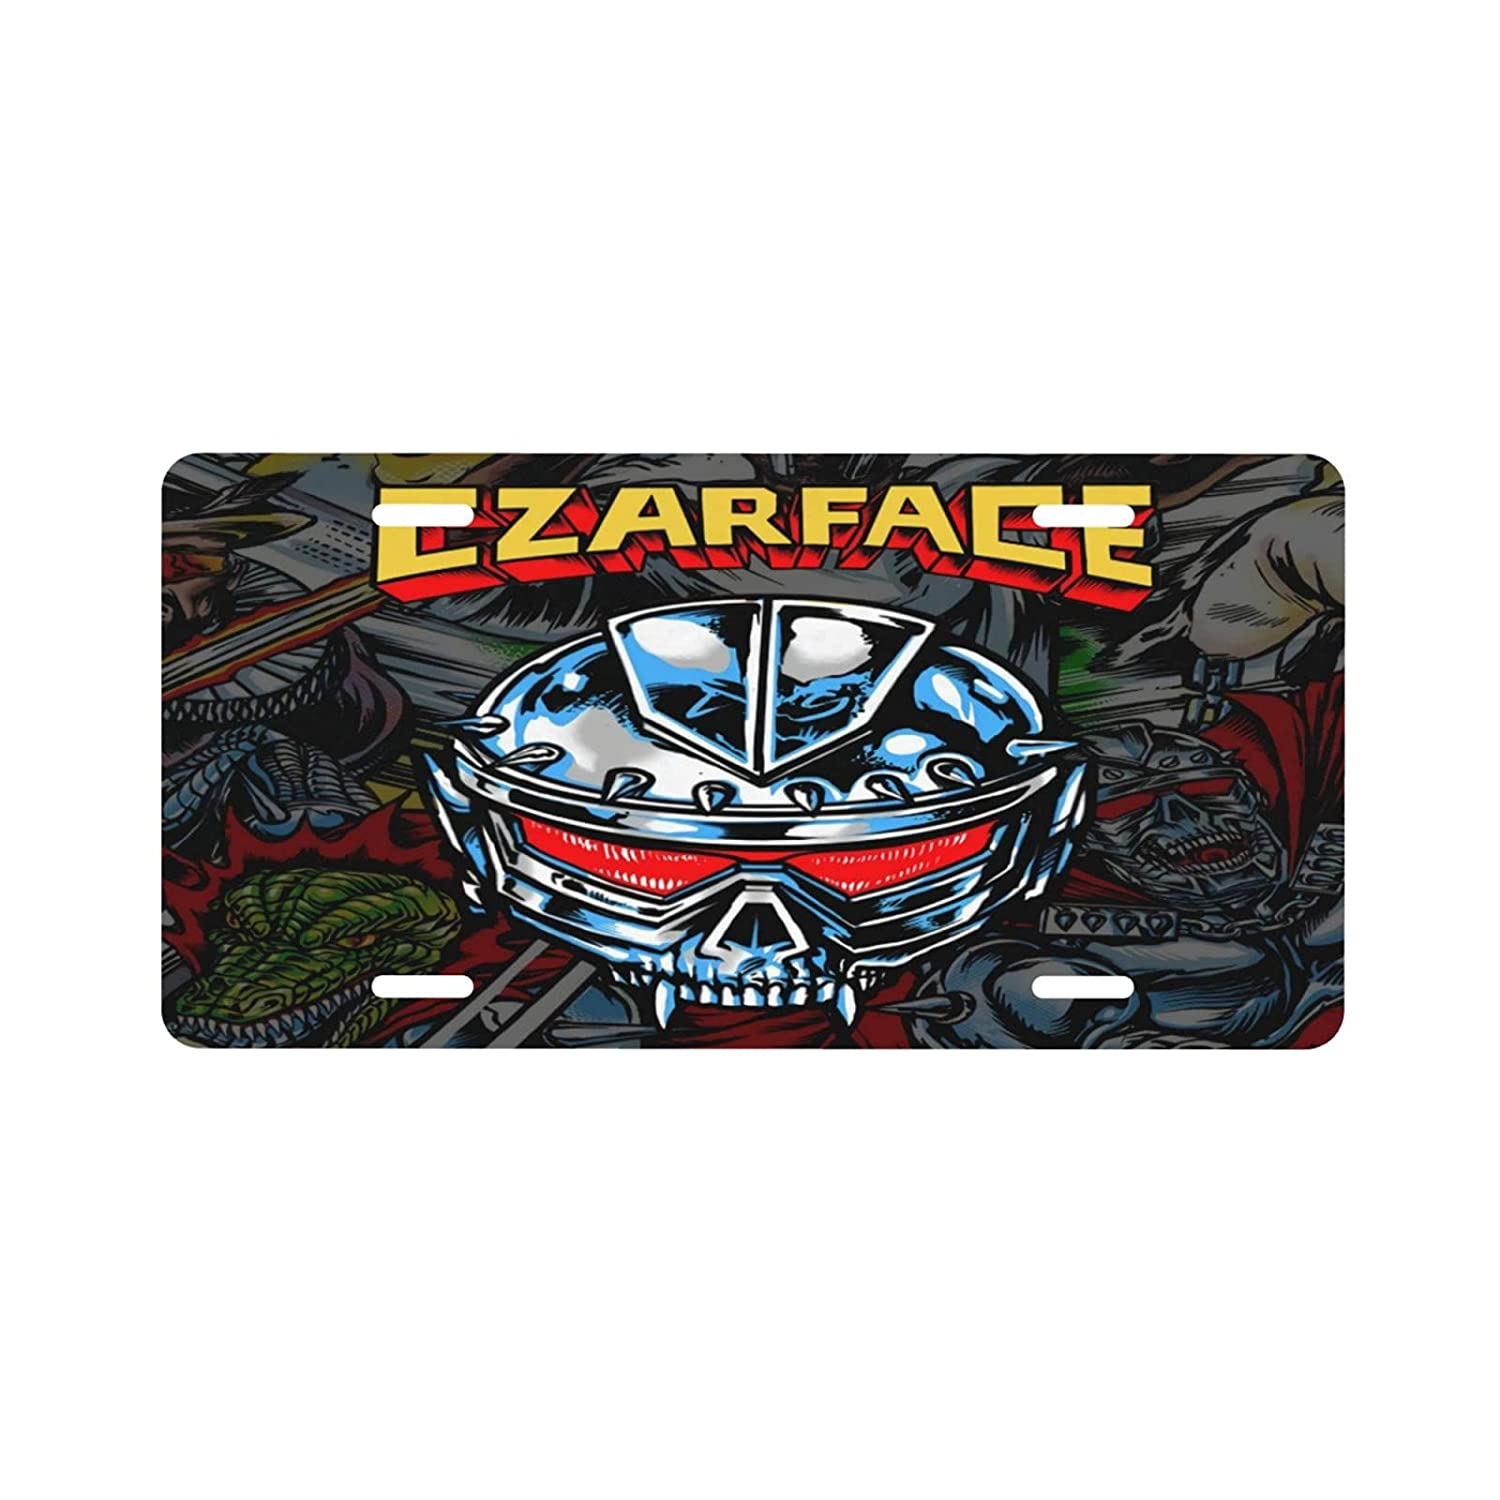 Cz-Arf-Ace License Plate Aluminum Popular products Novelty Tag Car ...